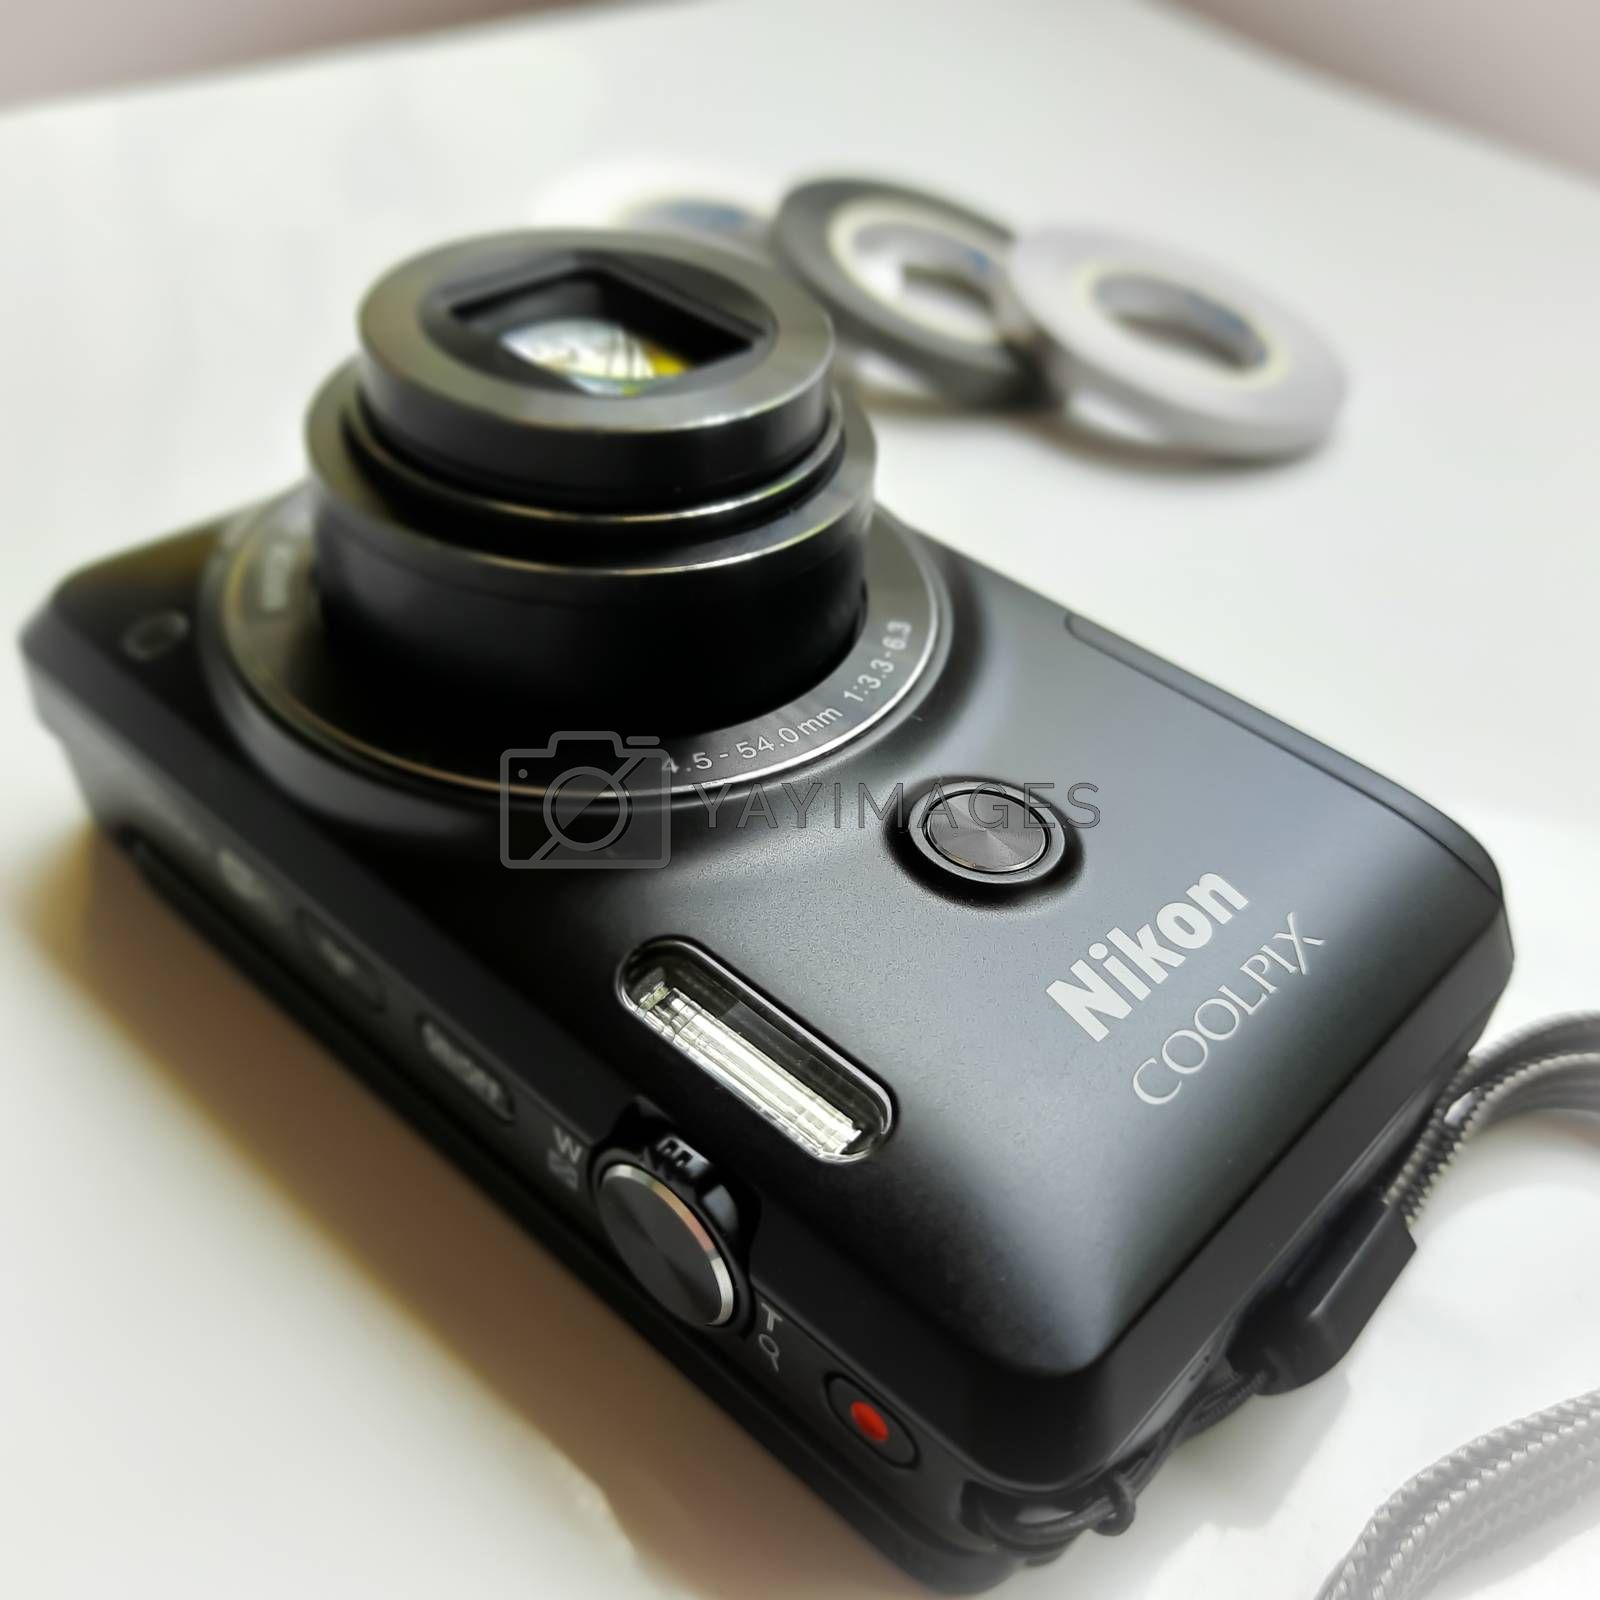 Chennai, India - July 3 2020: Digital Camera or point-point camera placed in white background with small round ribbons for decoration